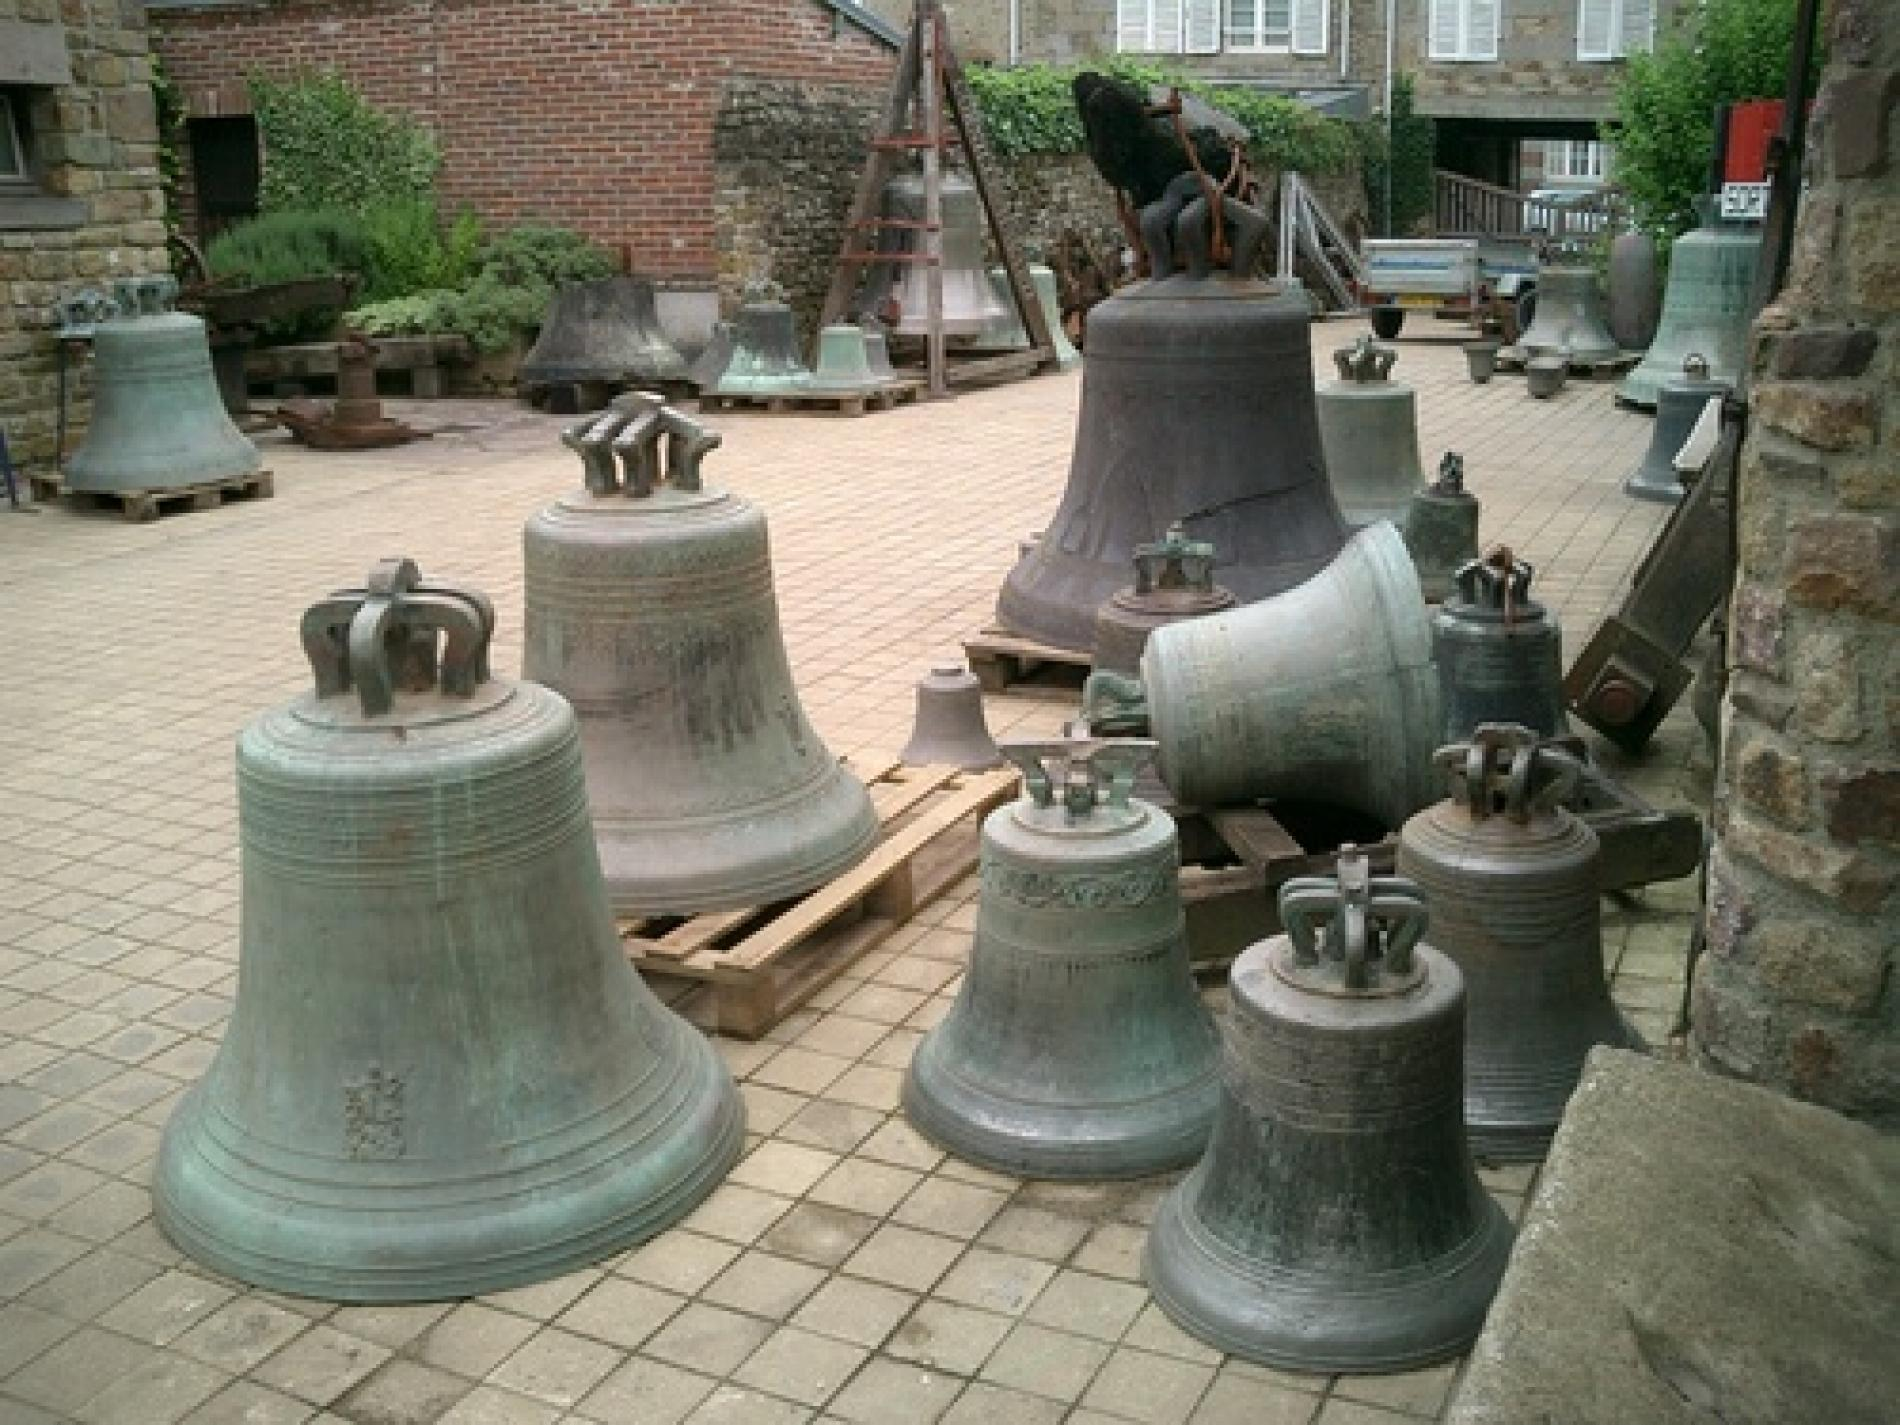 Bell foundry